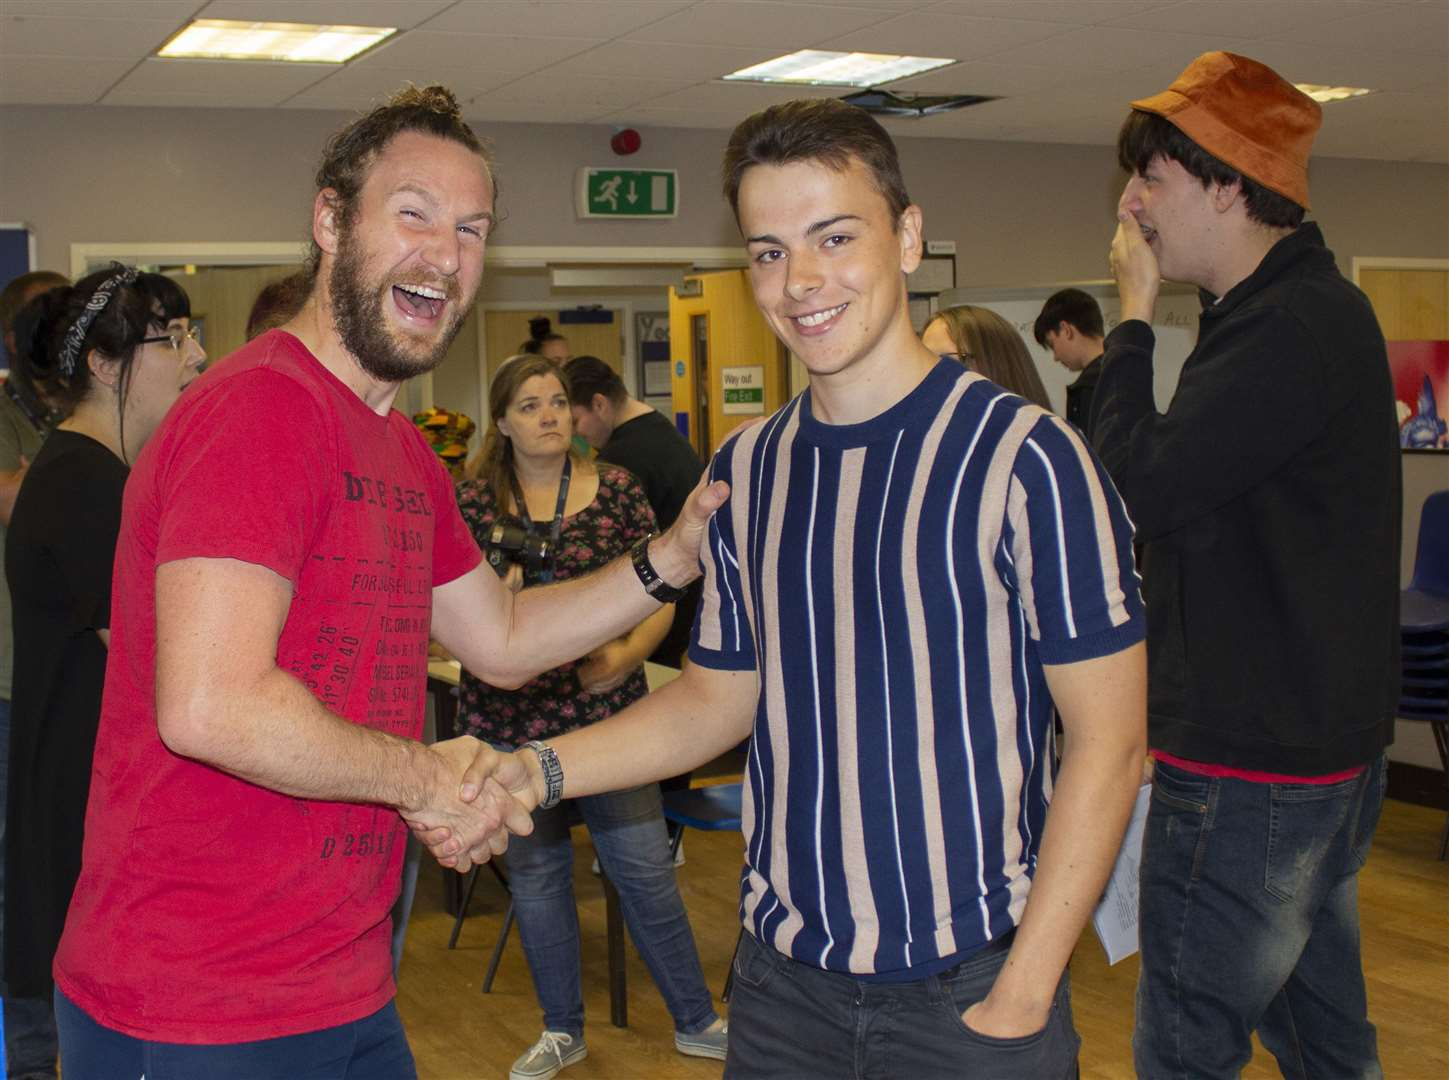 Holcombe Grammar School pupil Luke Yaxley has done well in his GCSEs (15618014)